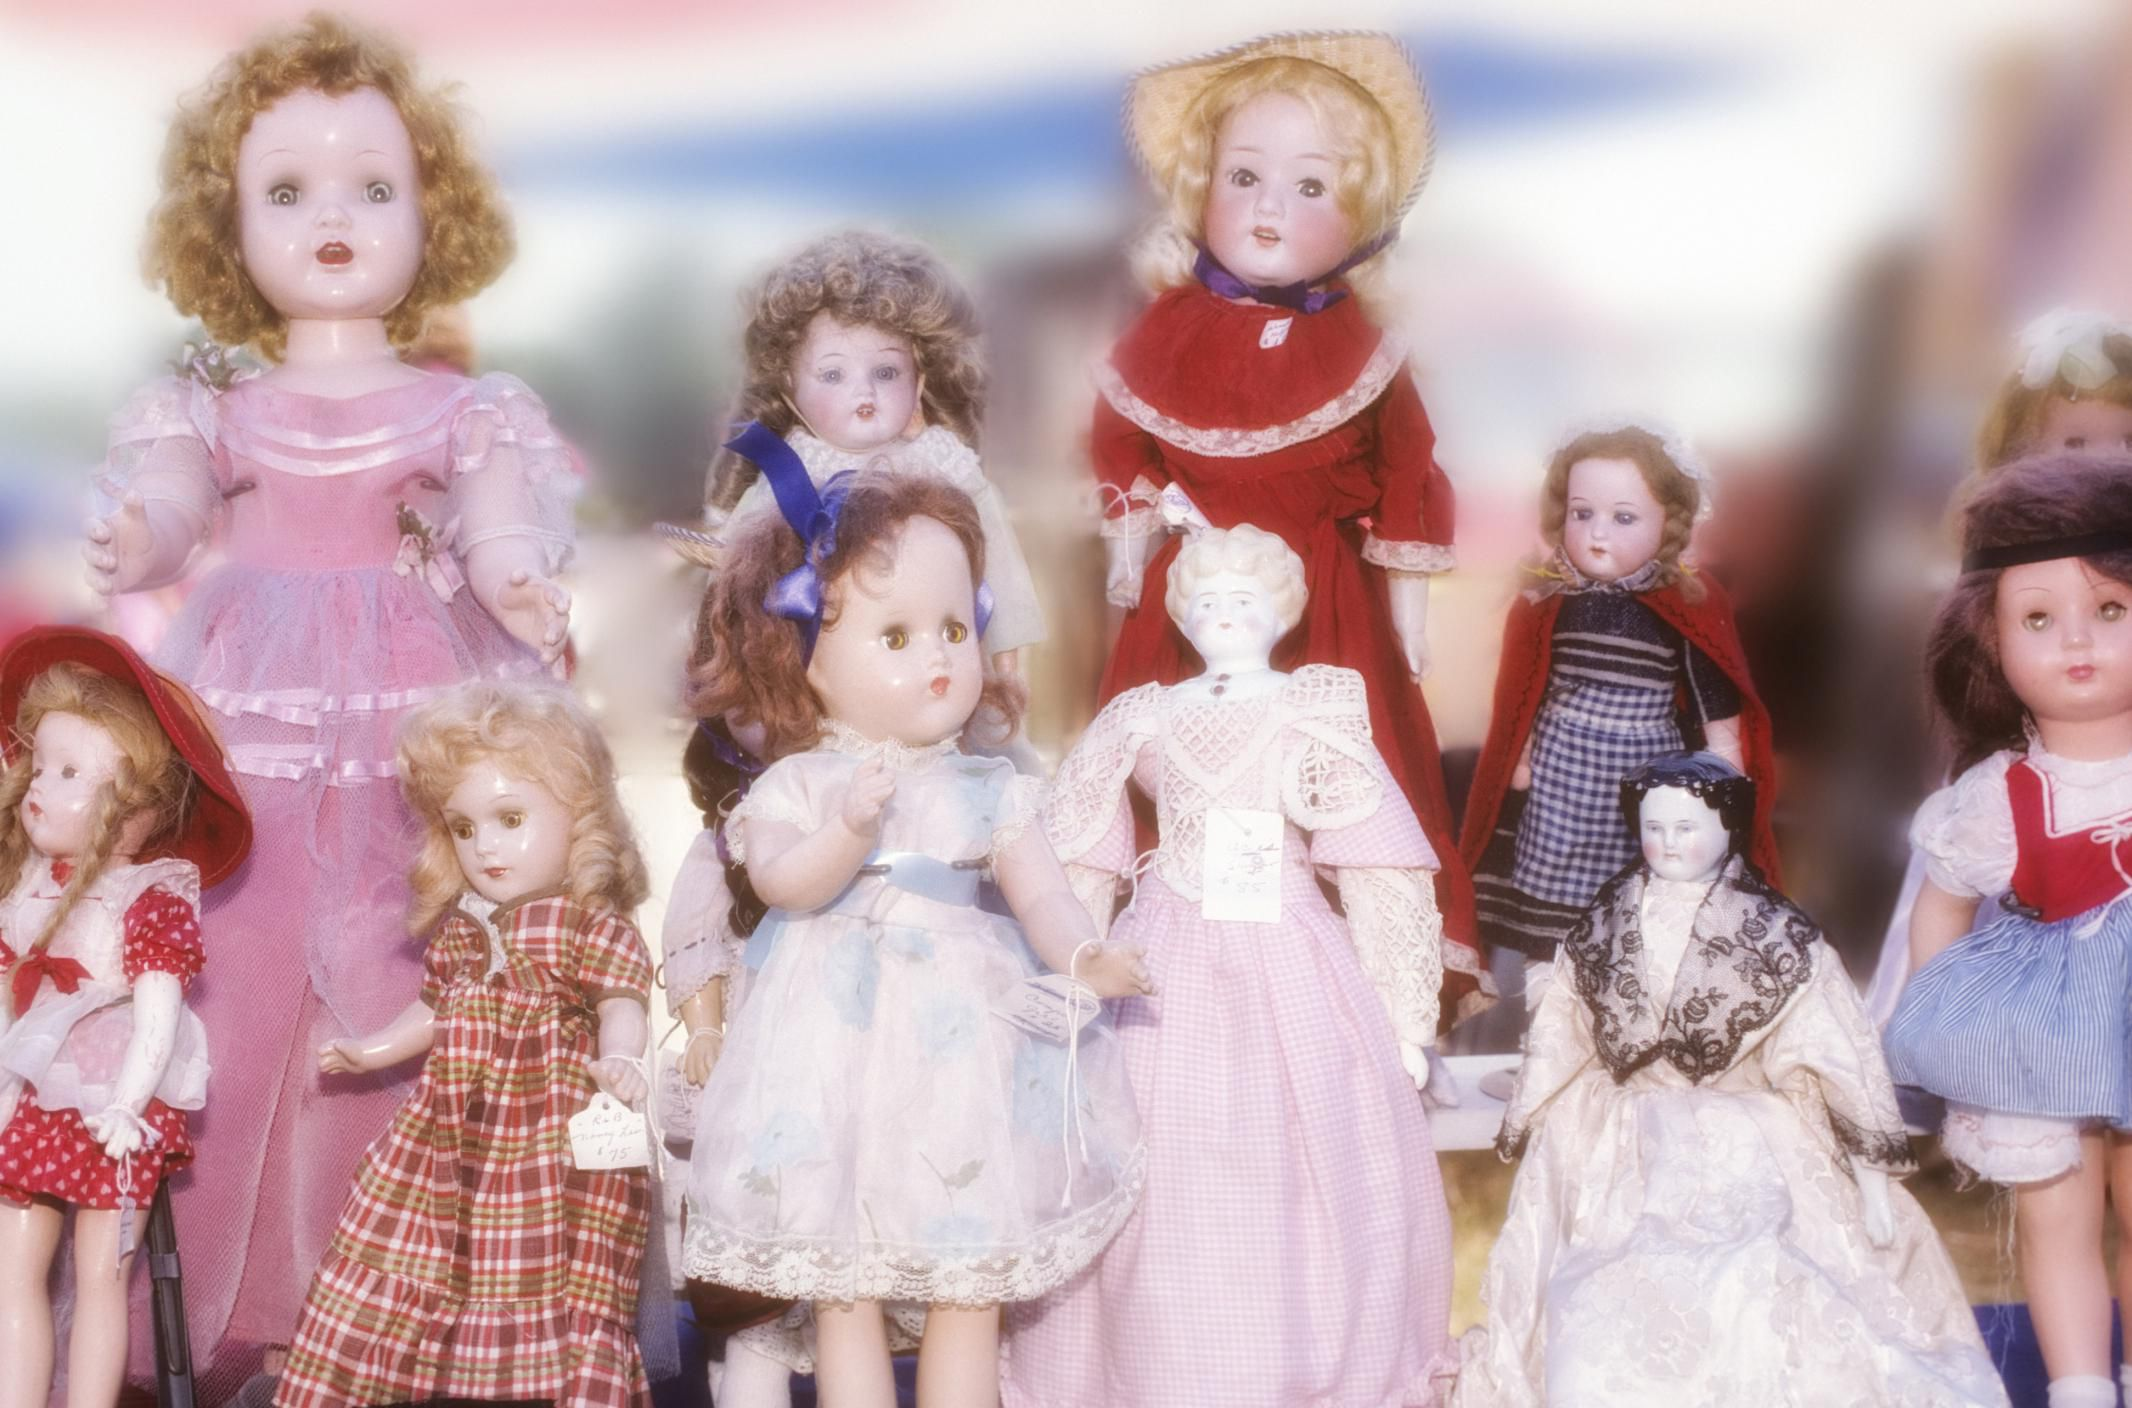 Where to Get Dolls That Look Like Your Child